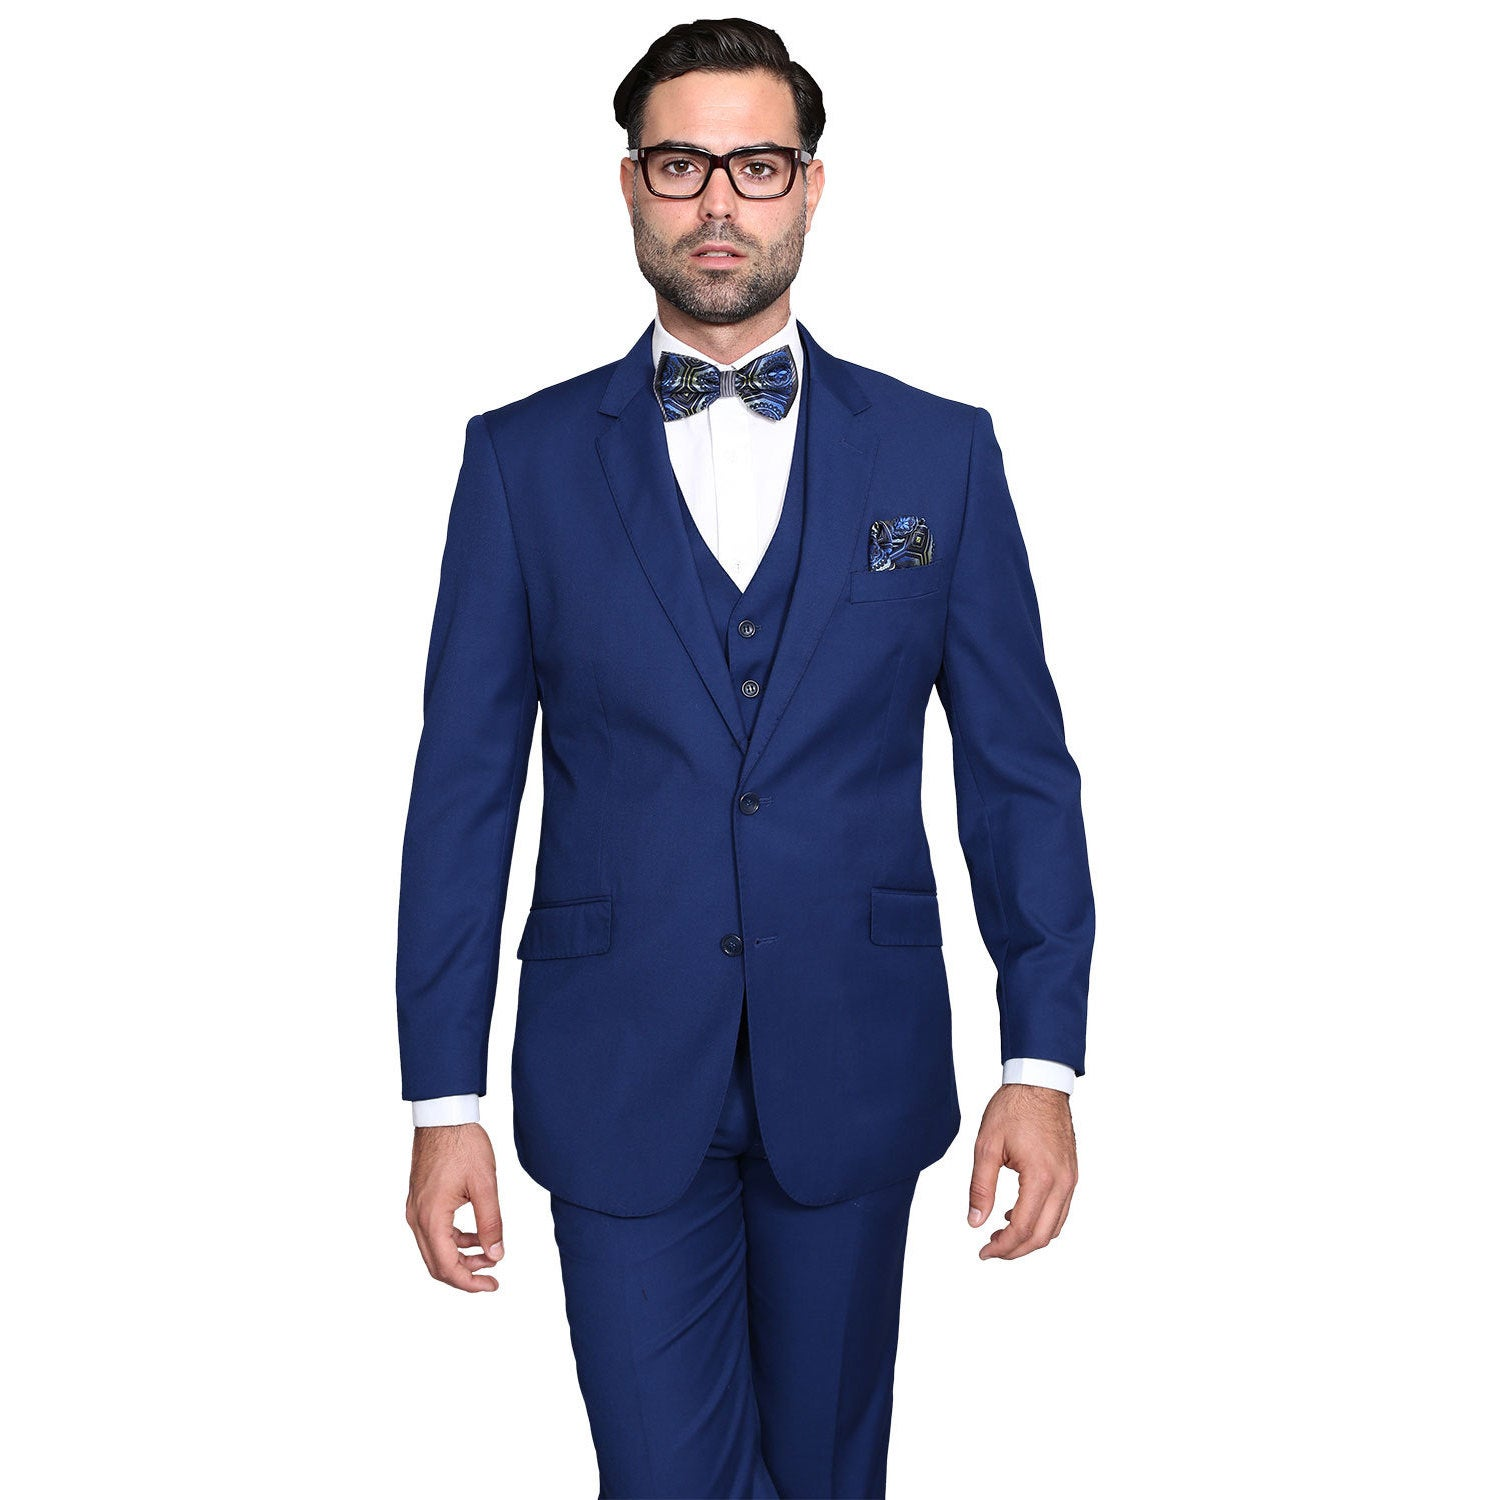 e9c36cc18c1c Shop Statement Suits Men's Wool Solid Color 3-piece Suit - On Sale - Free  Shipping Today - Overstock - 14681862